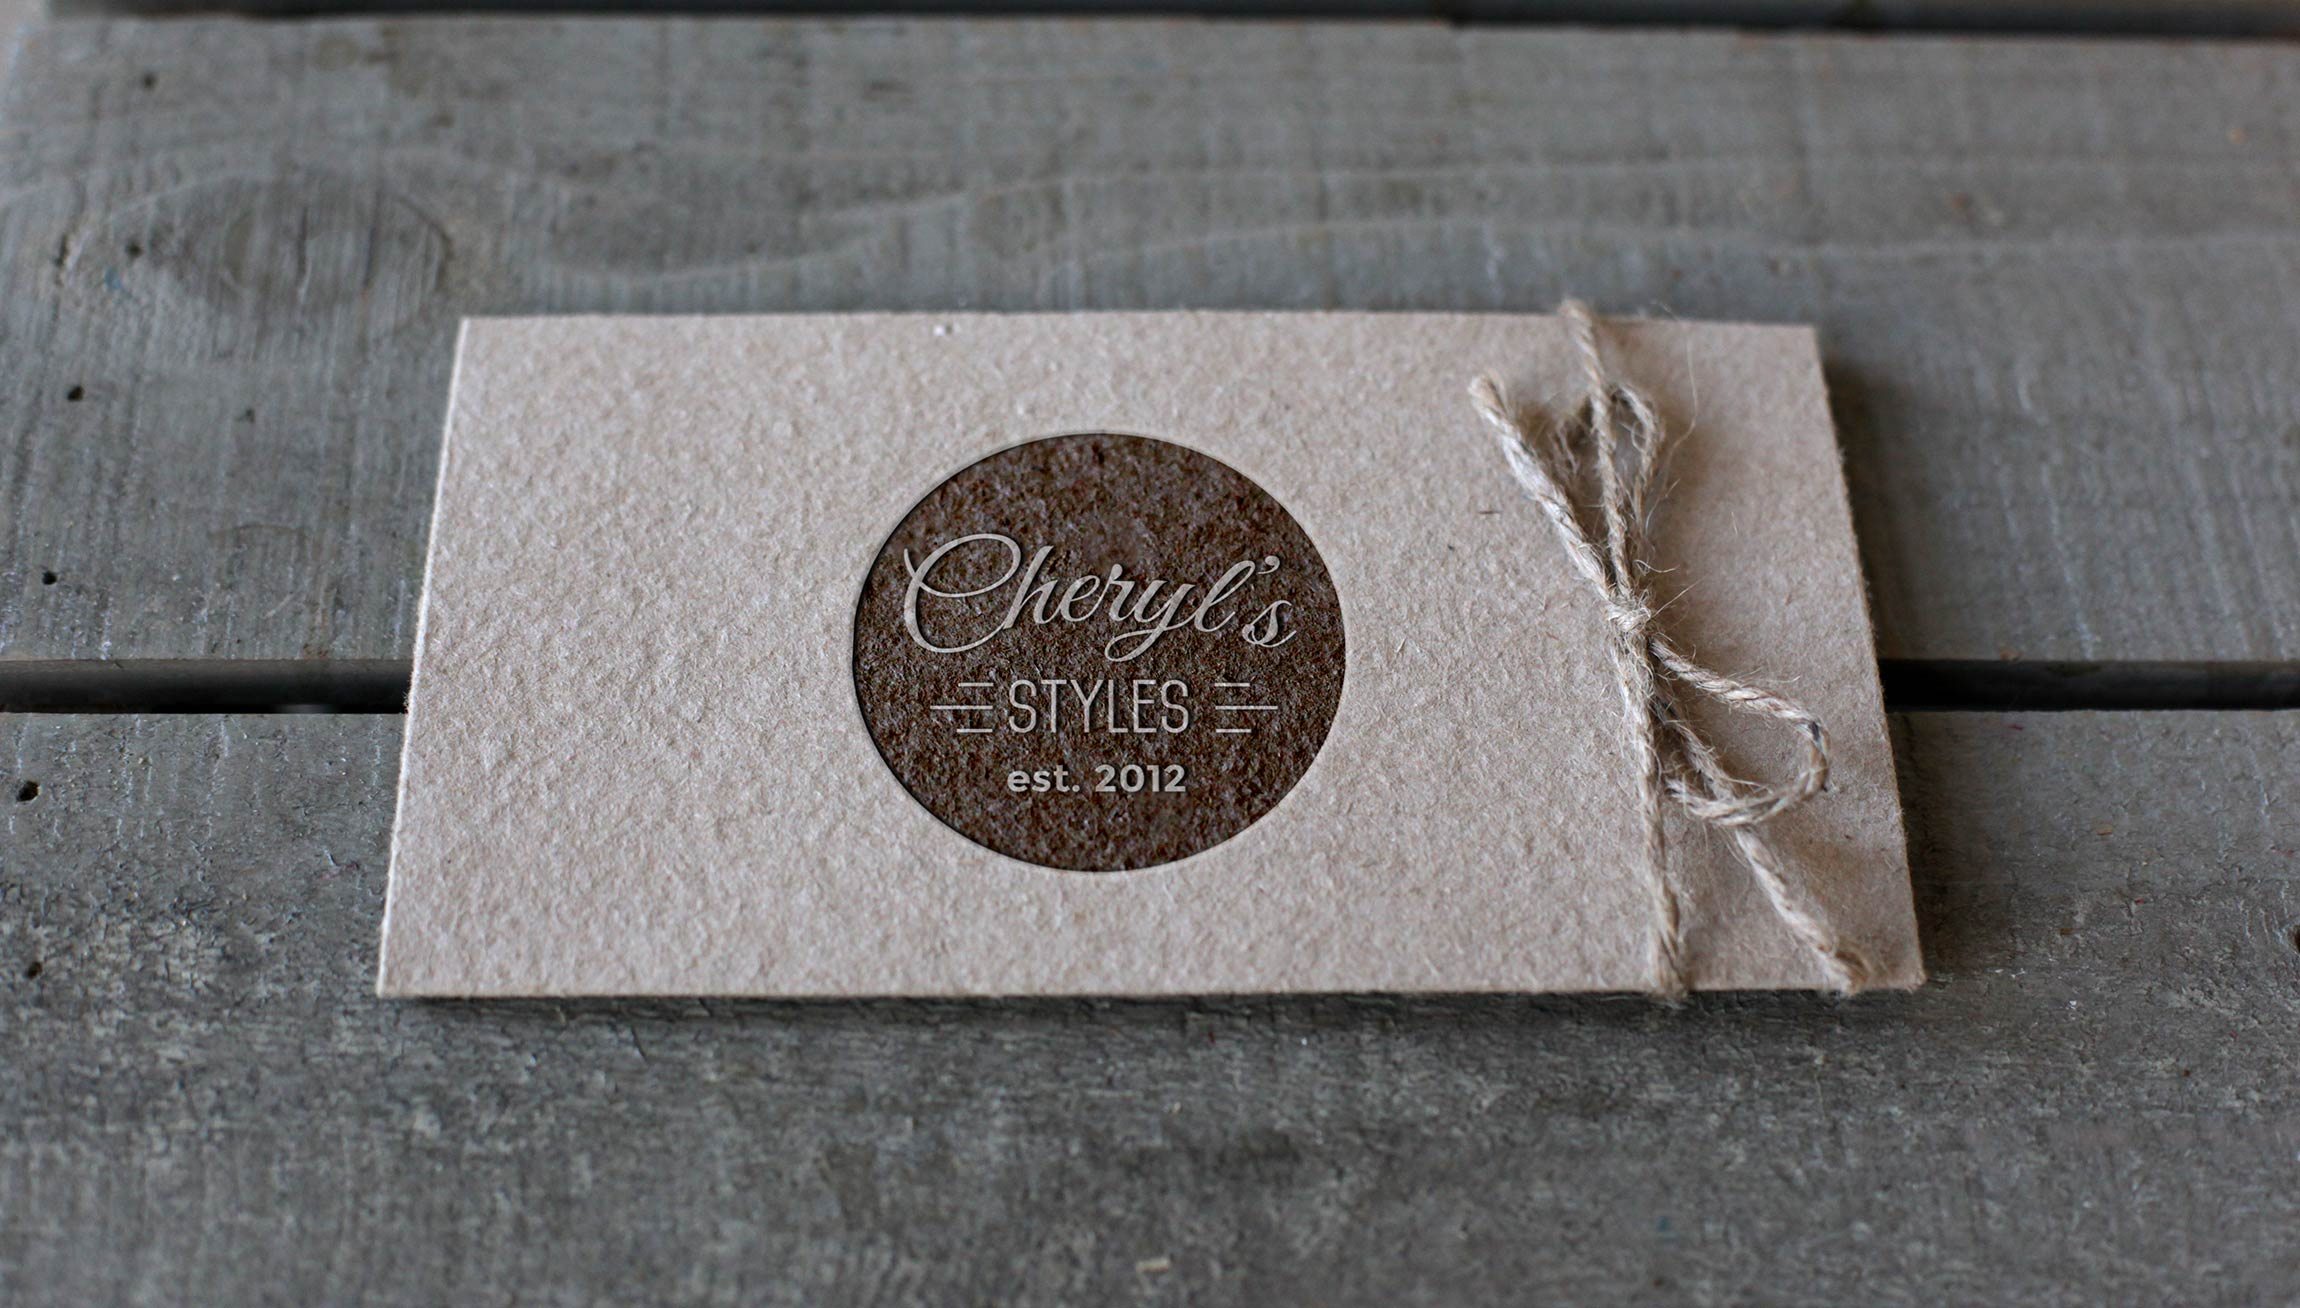 Printing and Design - Kraft Paper Business Card Mockups for Cheryl's Styles